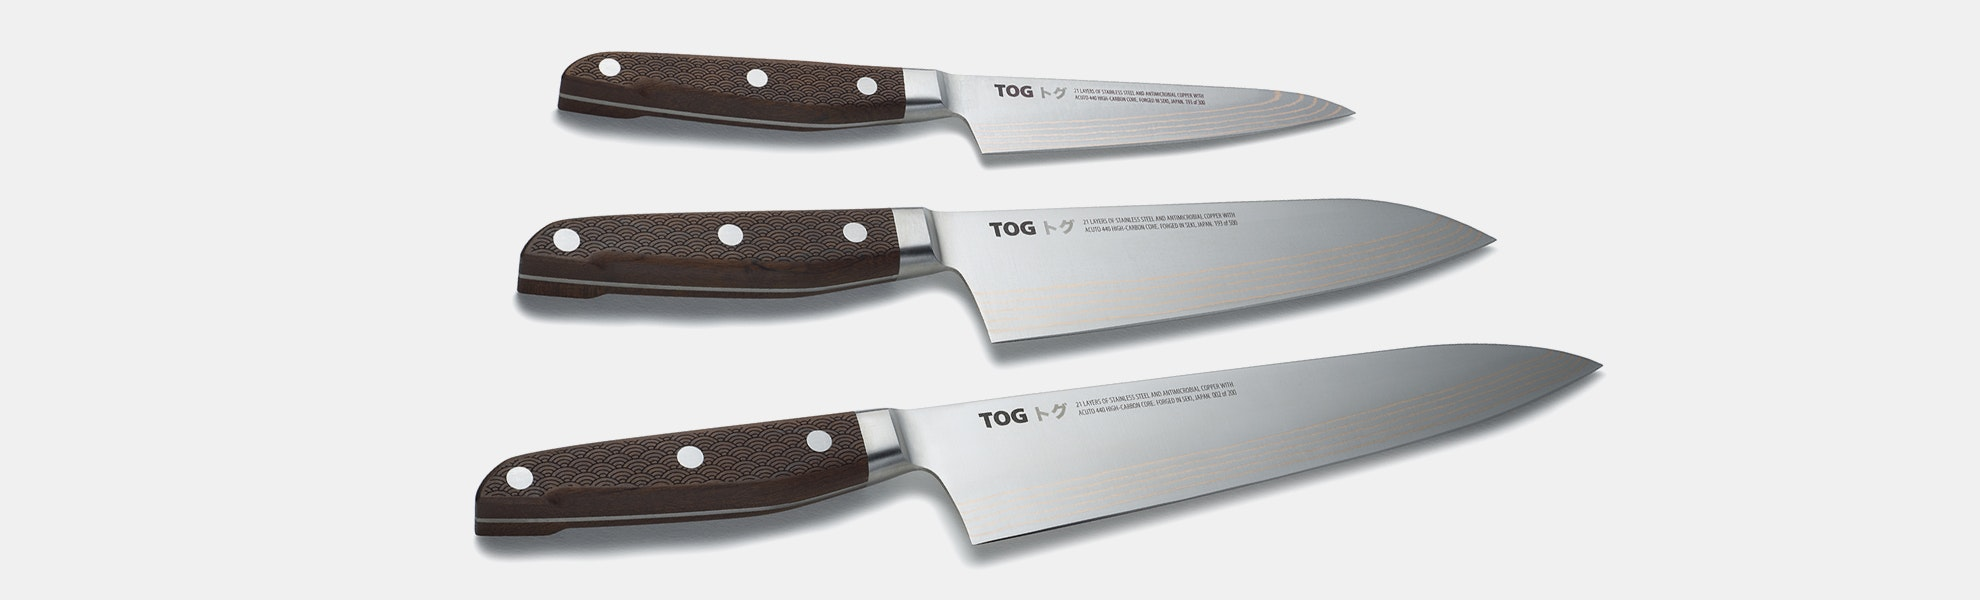 TOG Knives Culinary Knife Collection